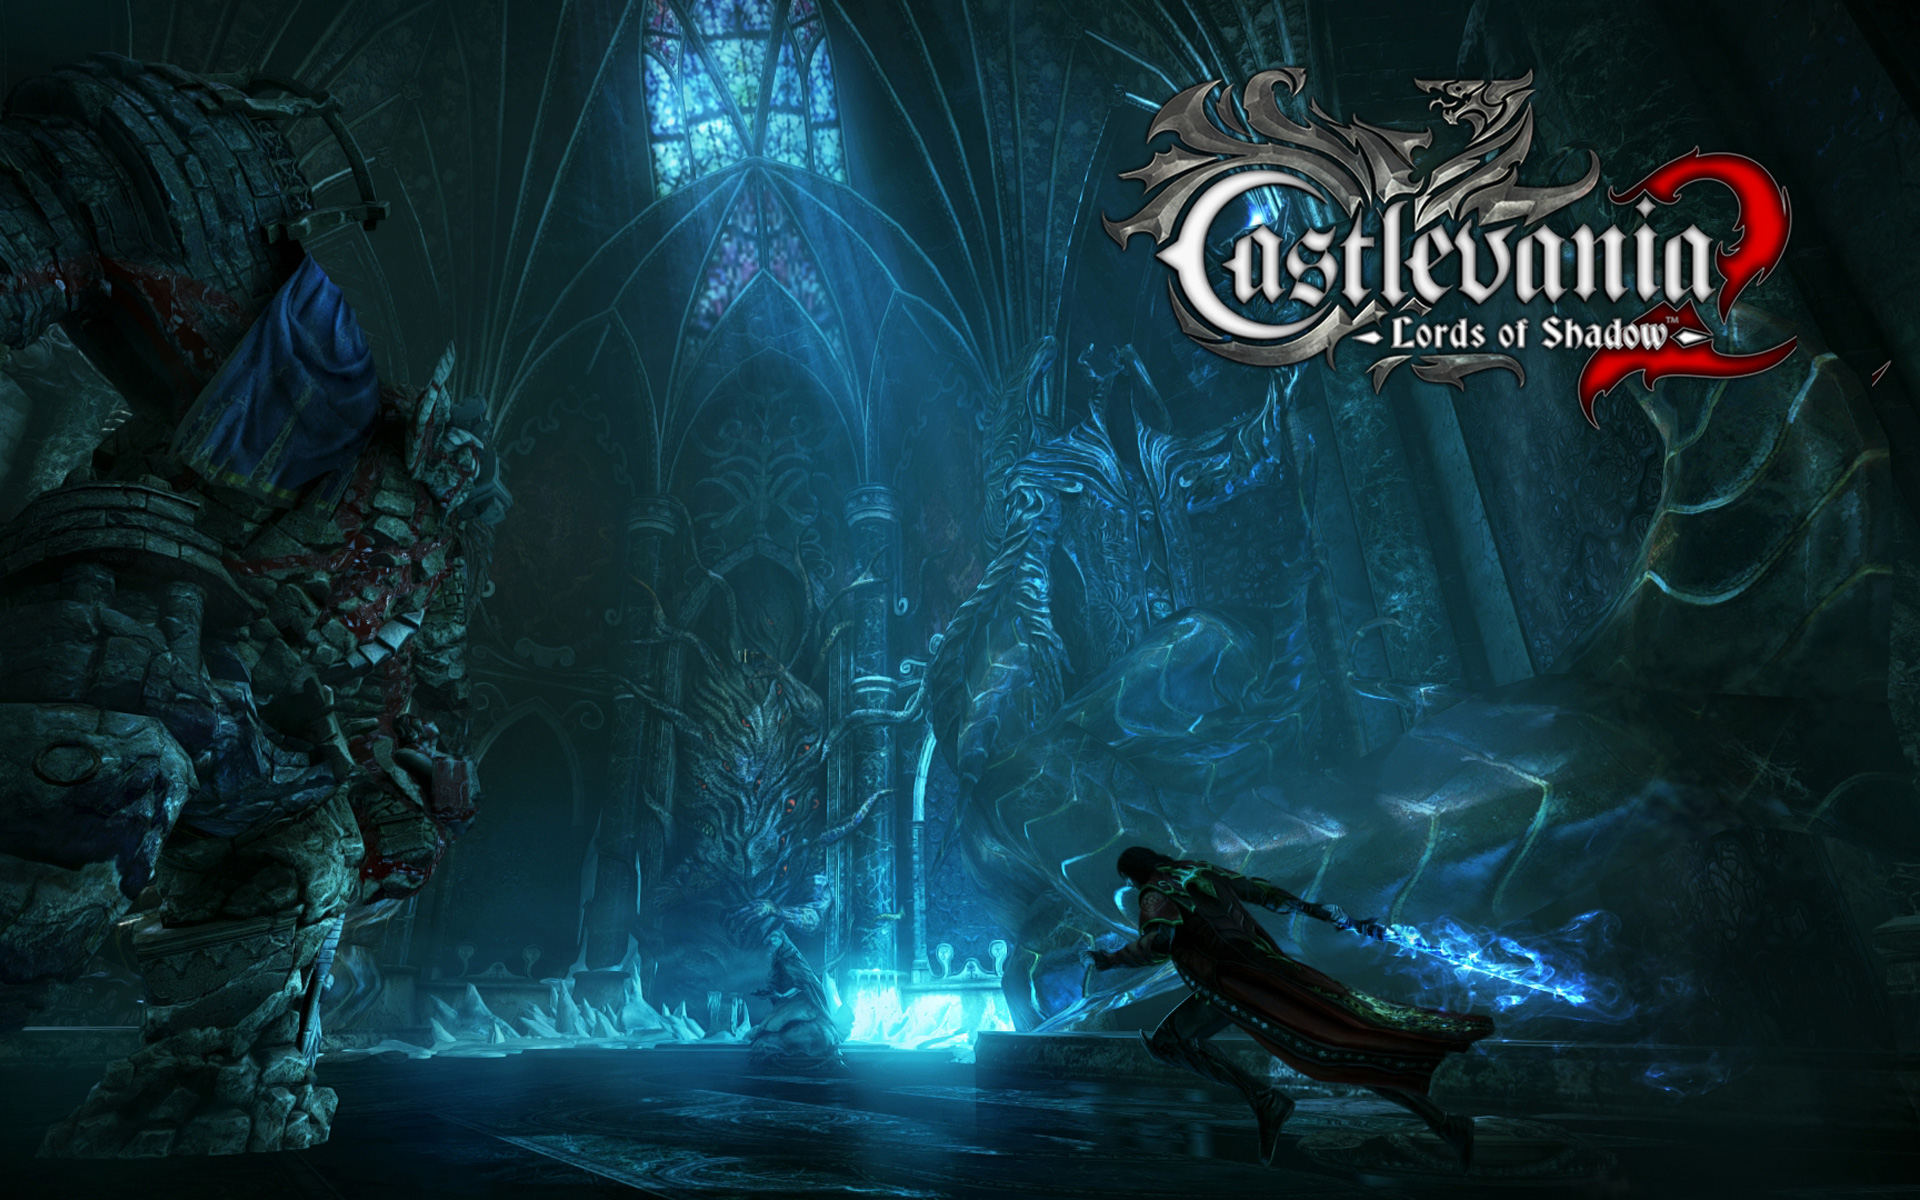 Castlevania: Lords of Shadow 2 Wallpaper in 1920x1200